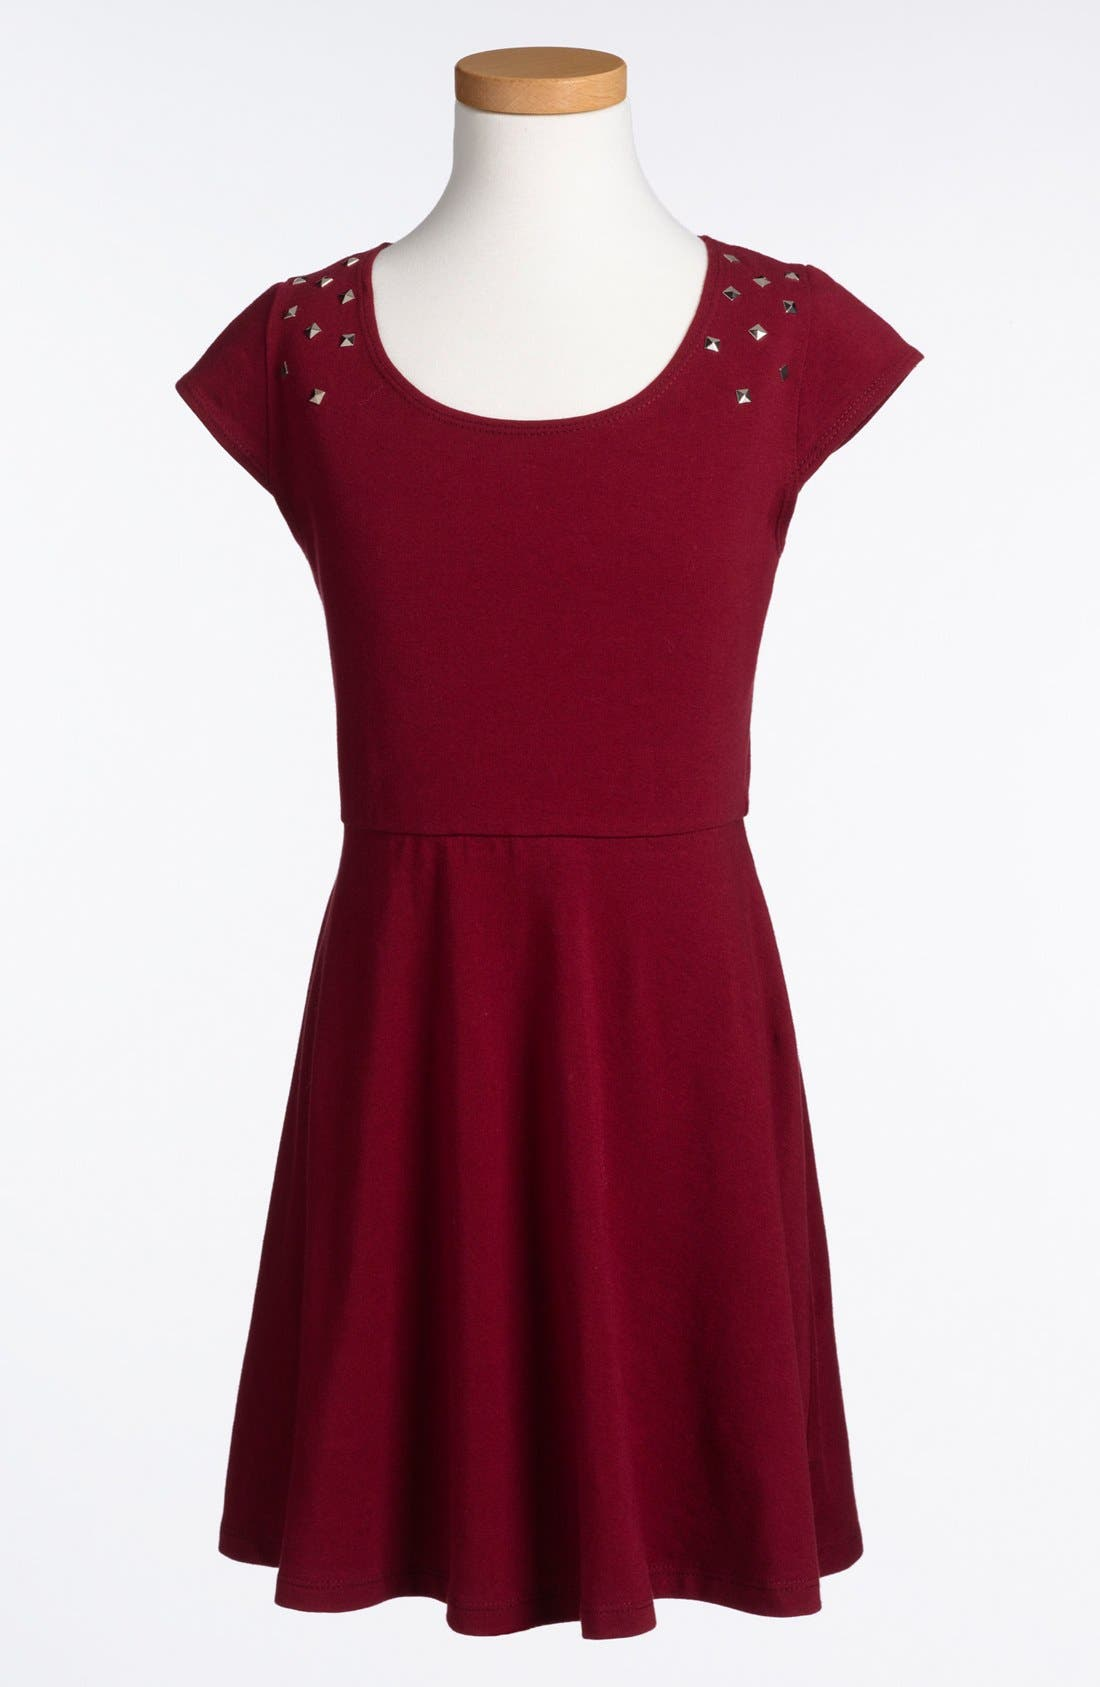 Main Image - Mia Chica Cap Sleeve Skater Dress (Little Girls & Big Girls) (Online Only)